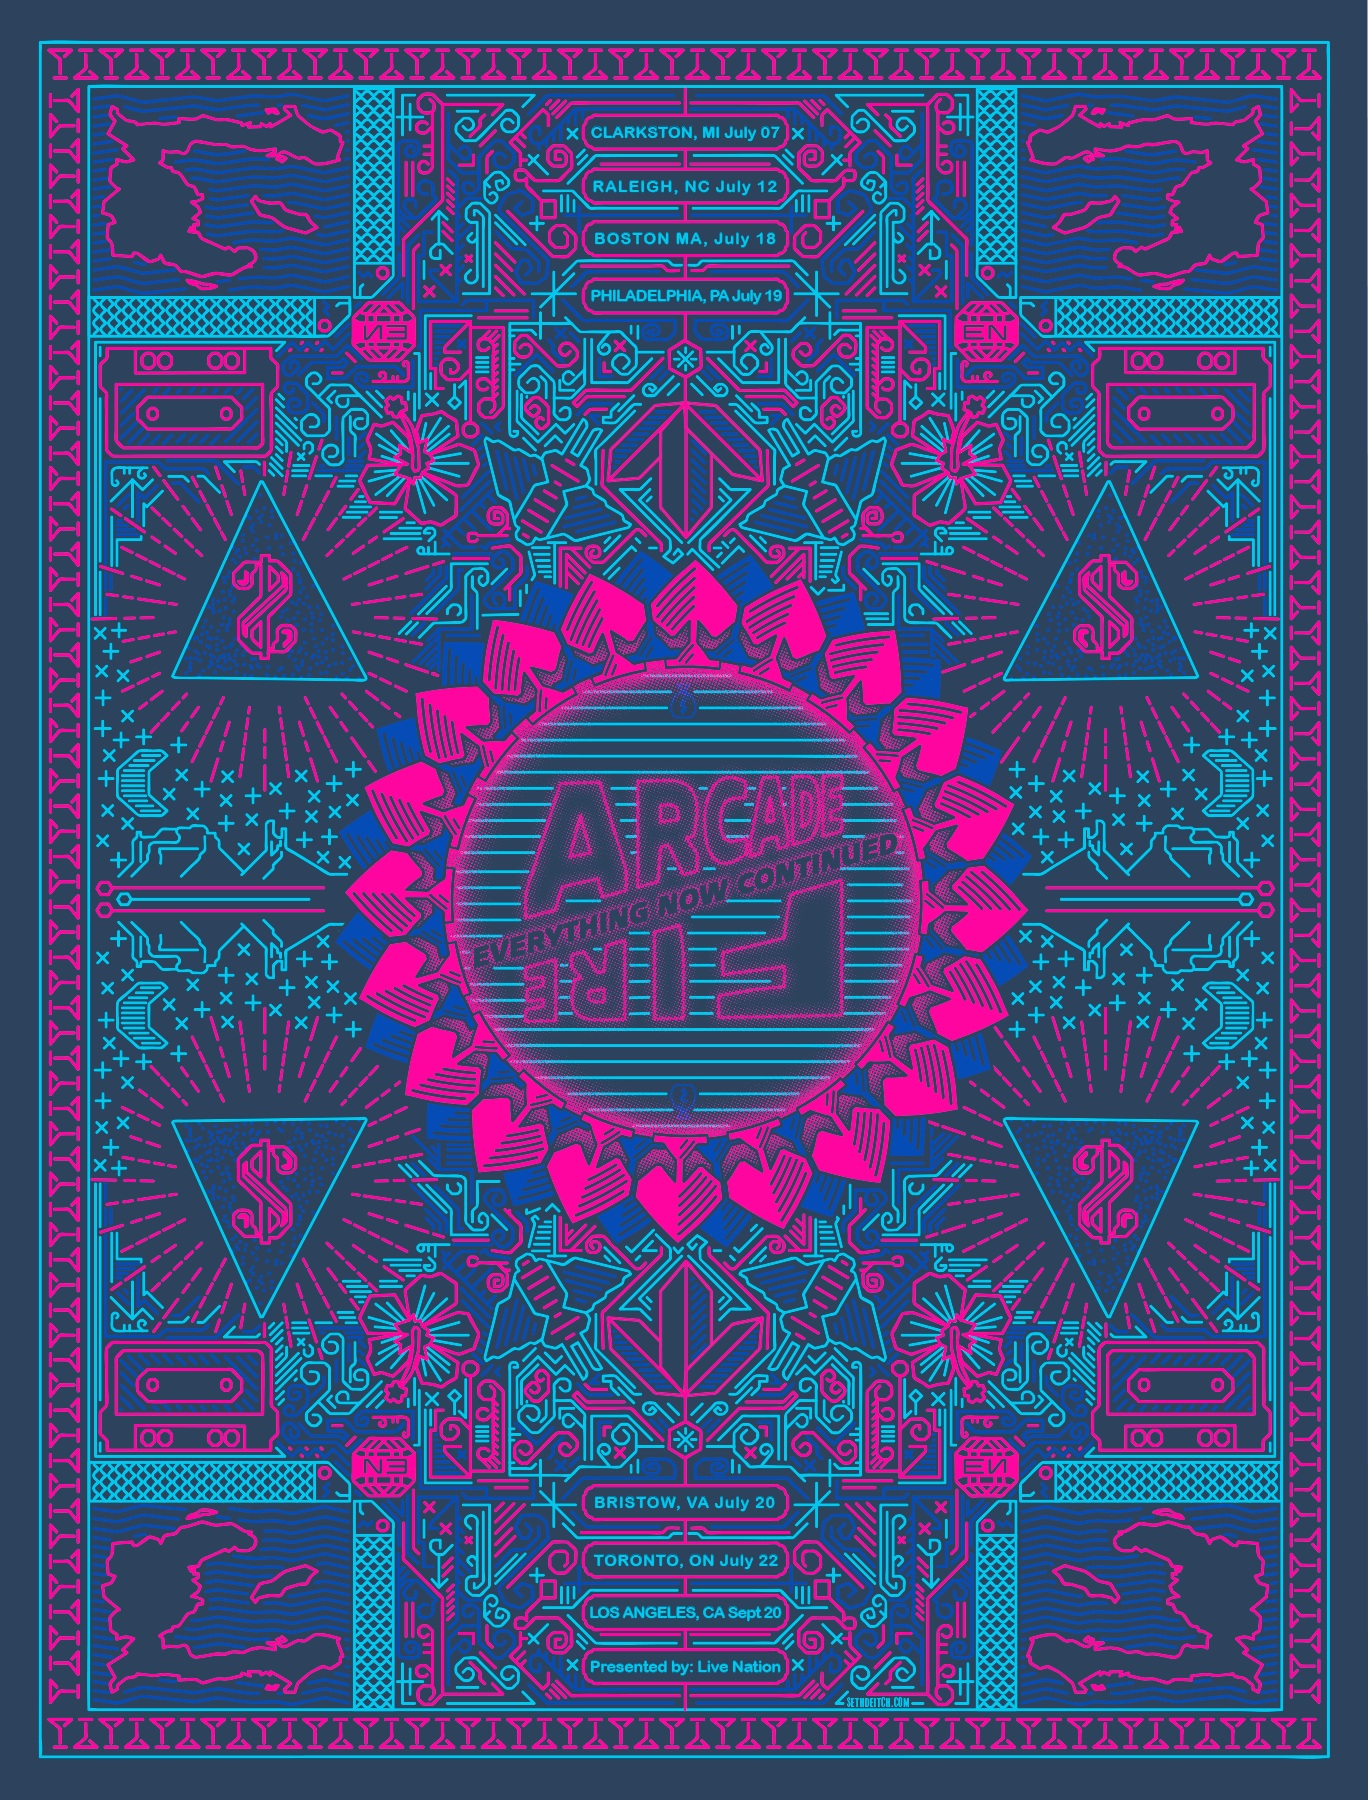 Arcade Fire Screen Print